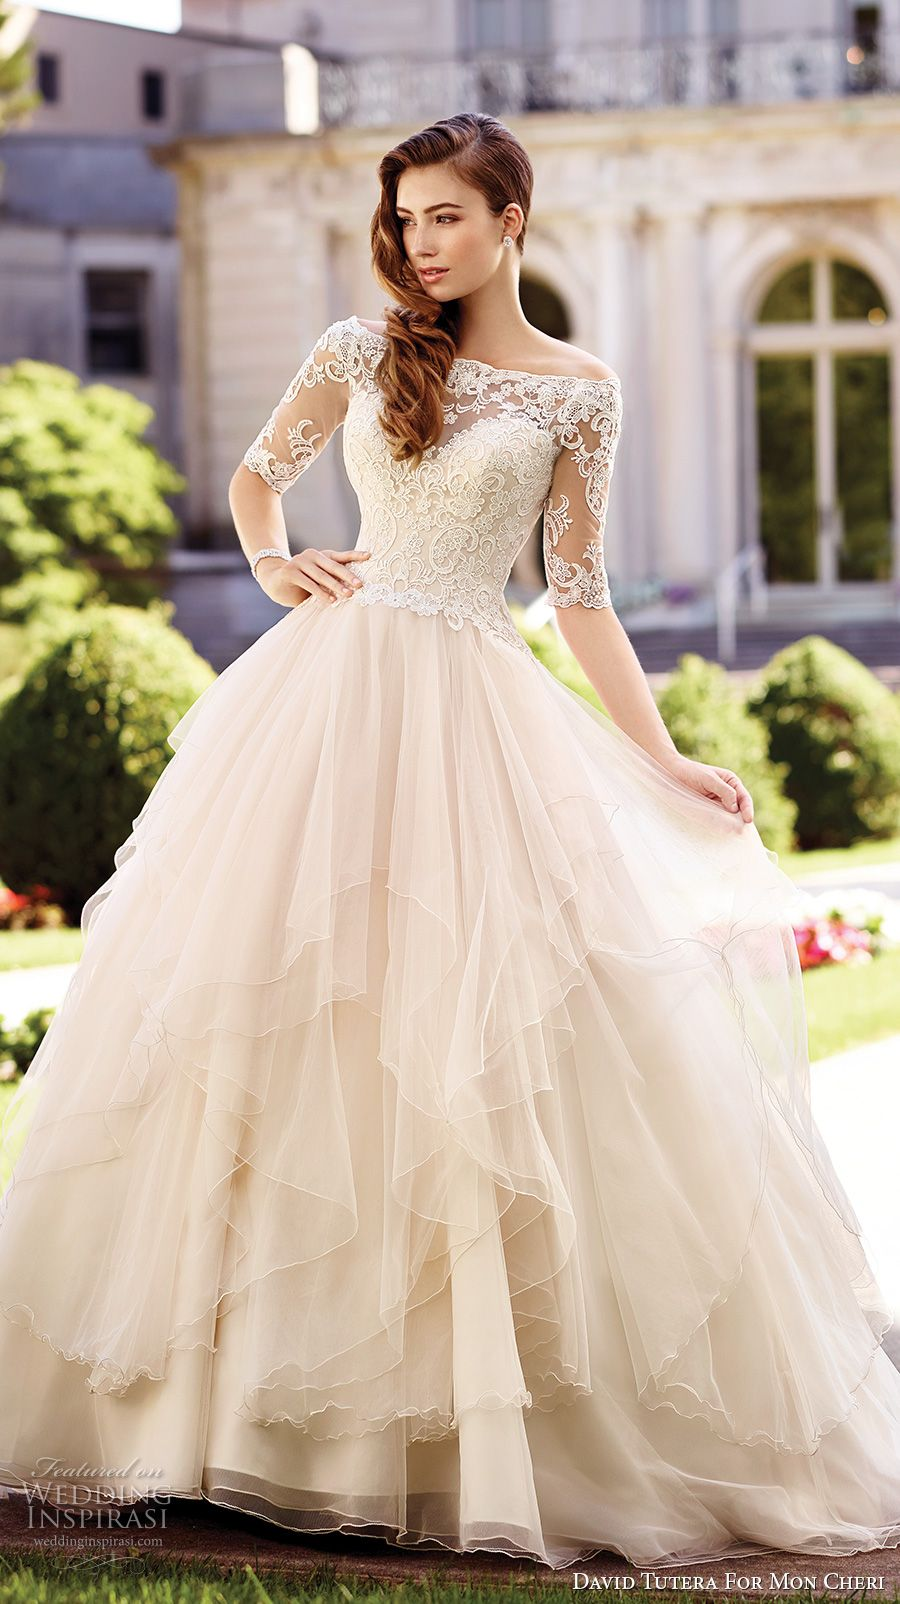 New david tutera mc spring bridal half sleeves illusion off the shoulder sweetheart neckline heavily embellished bodice princess ball gown wedding dress